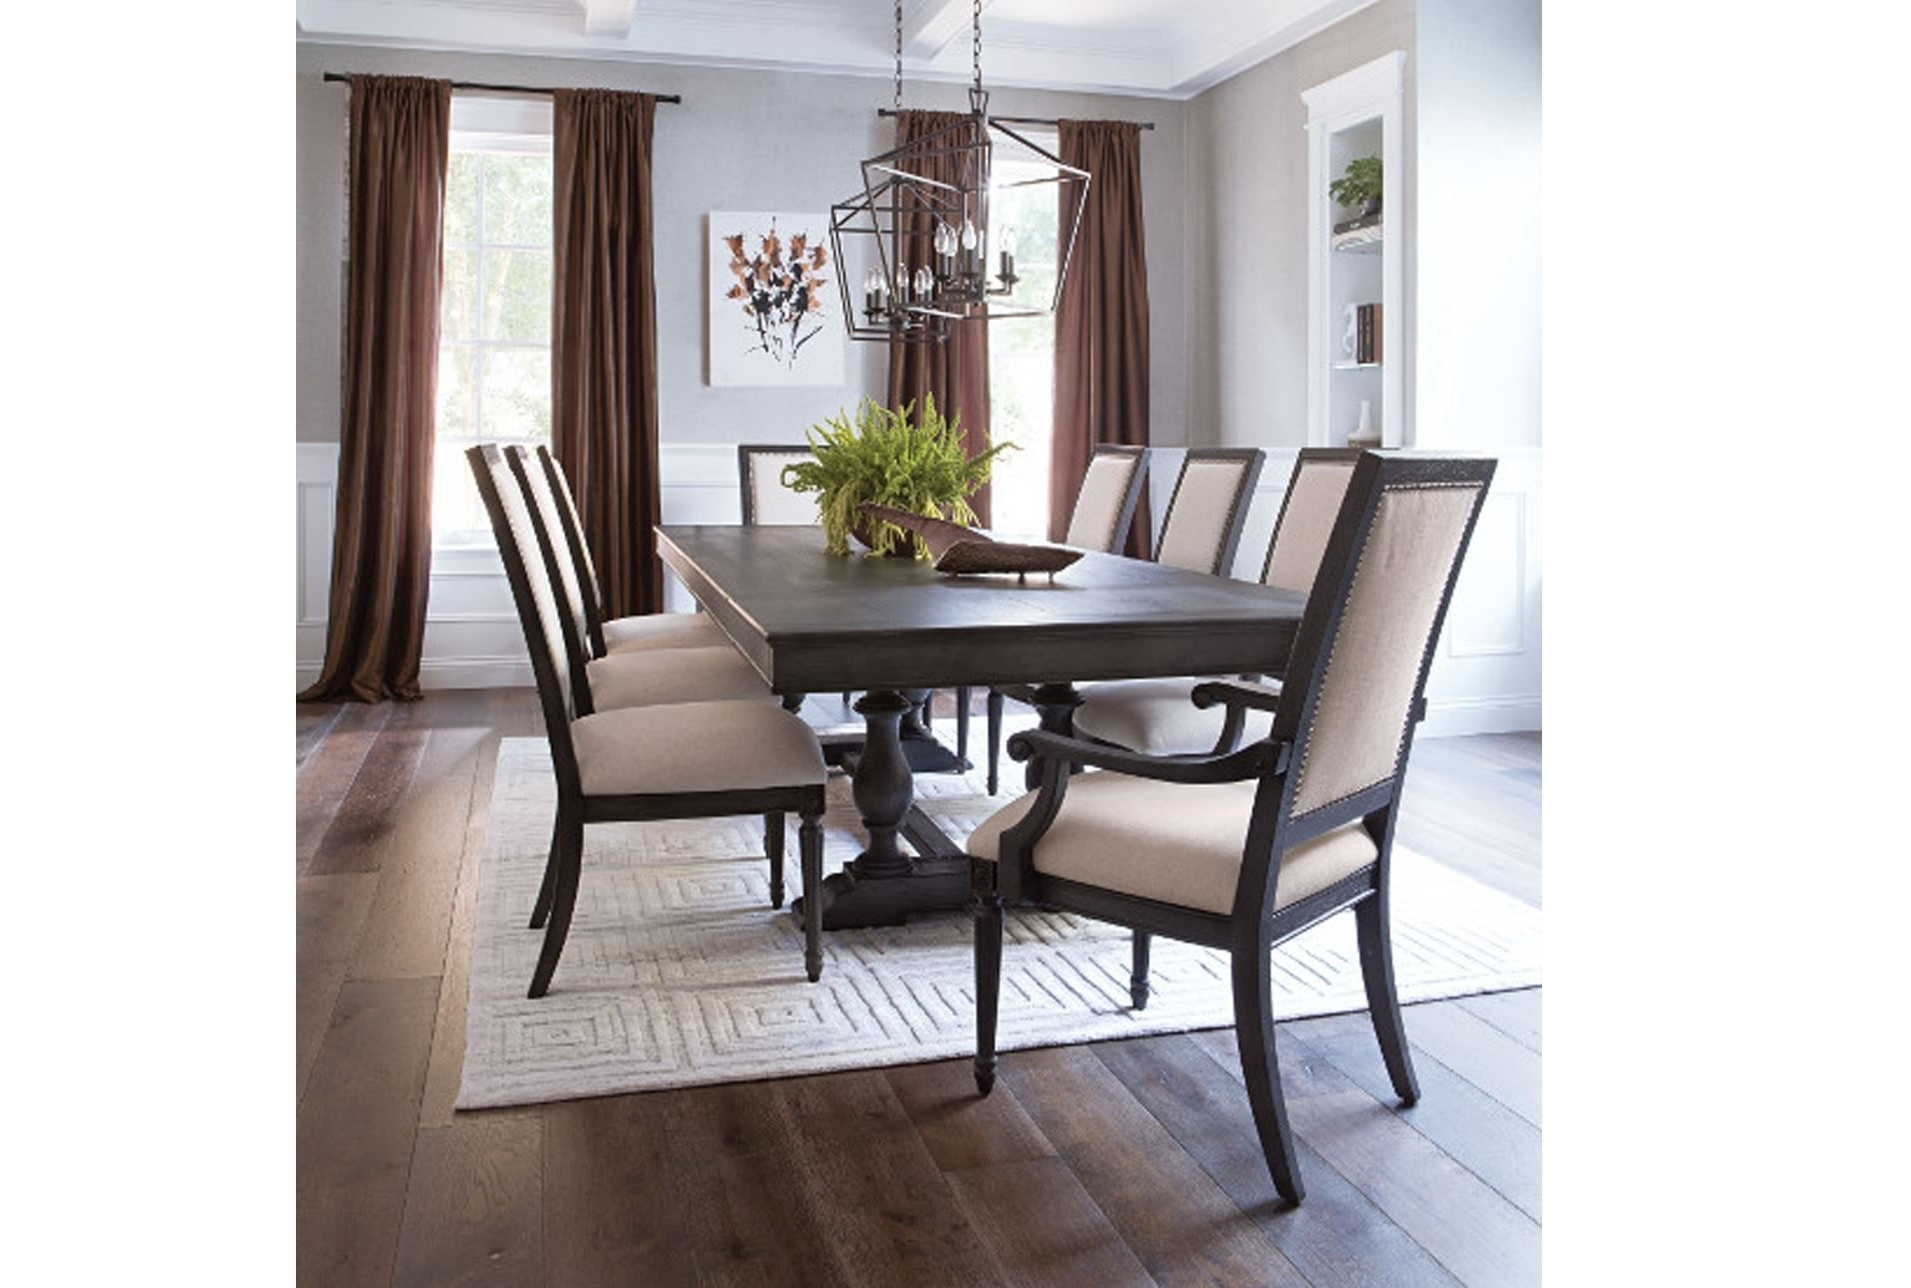 Trendy Chapleau 9 Piece Extension Dining Set, Off White For Chapleau Ii Arm Chairs (View 17 of 20)